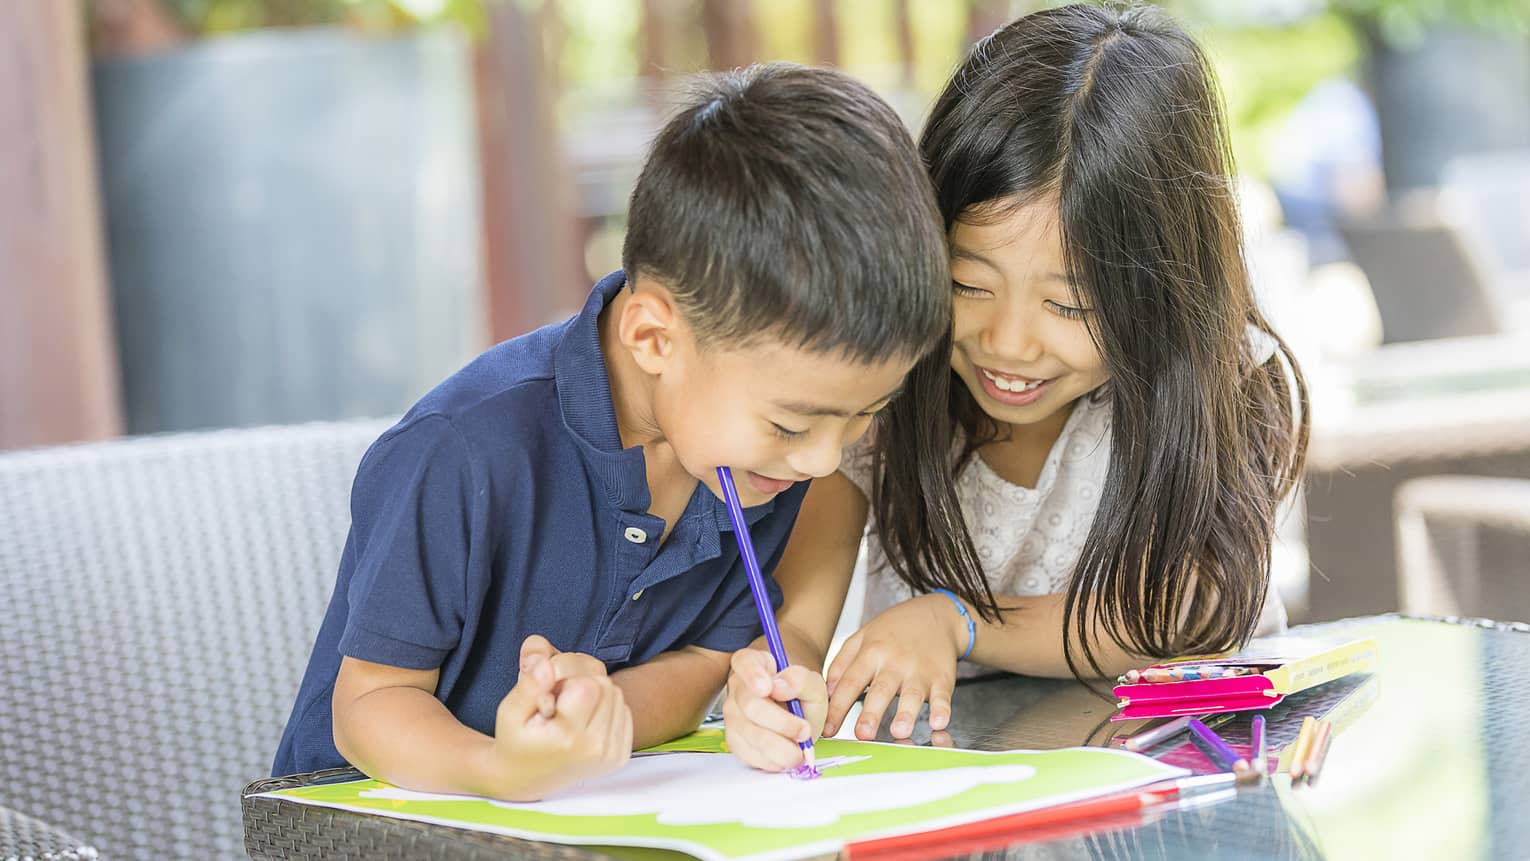 Smiling young boy and girl colouring in book with crayon